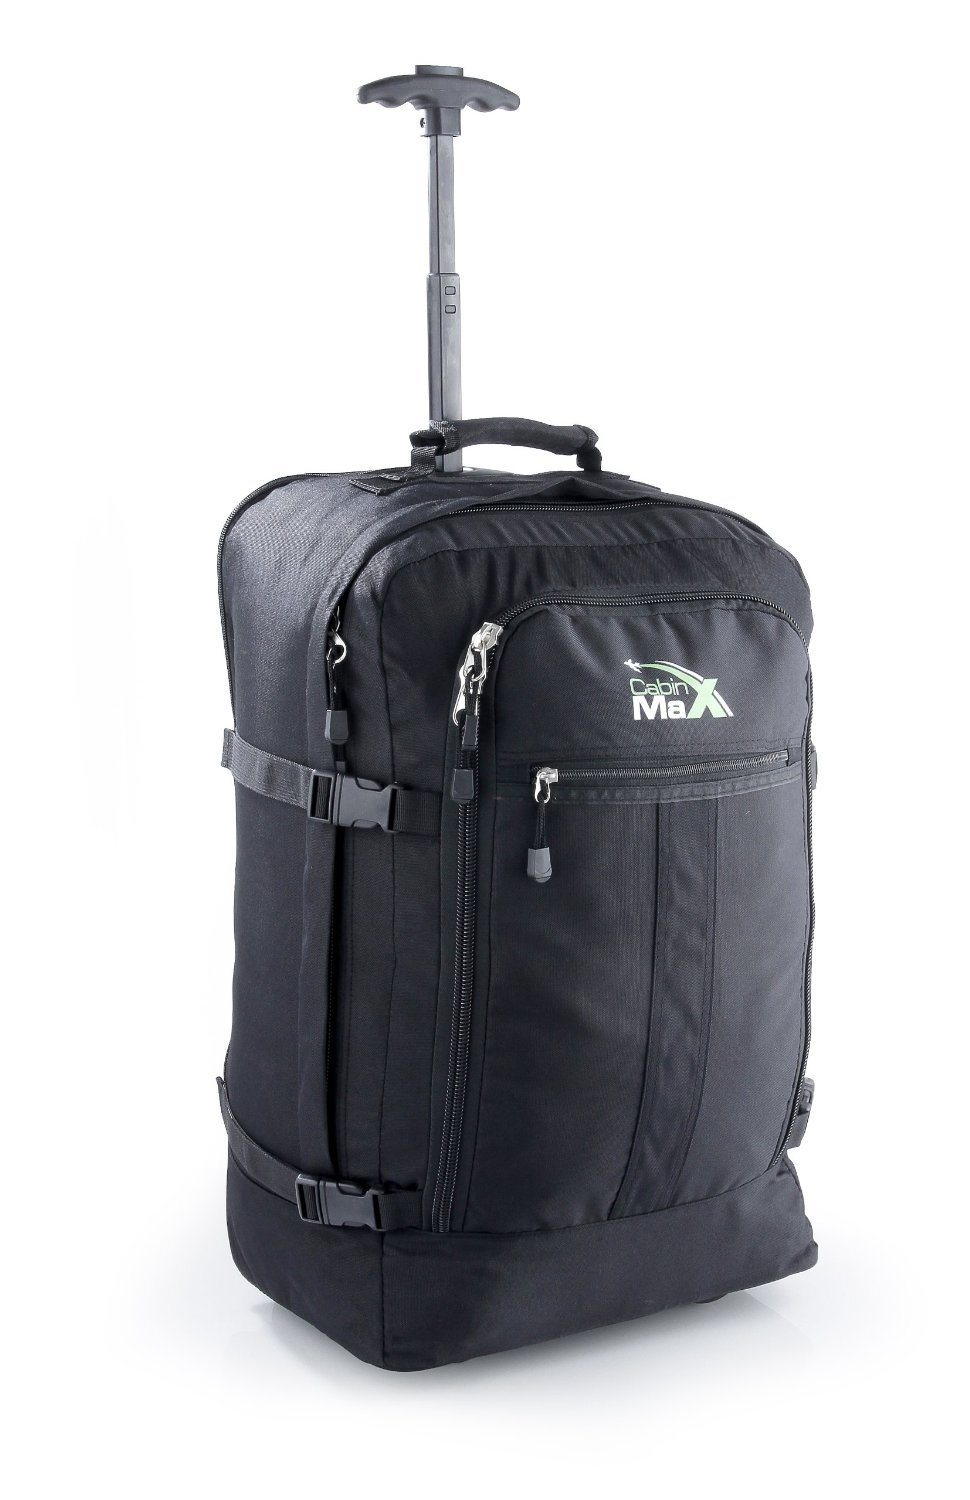 cabin max lyon flight approved bag wheeled carry on. Black Bedroom Furniture Sets. Home Design Ideas